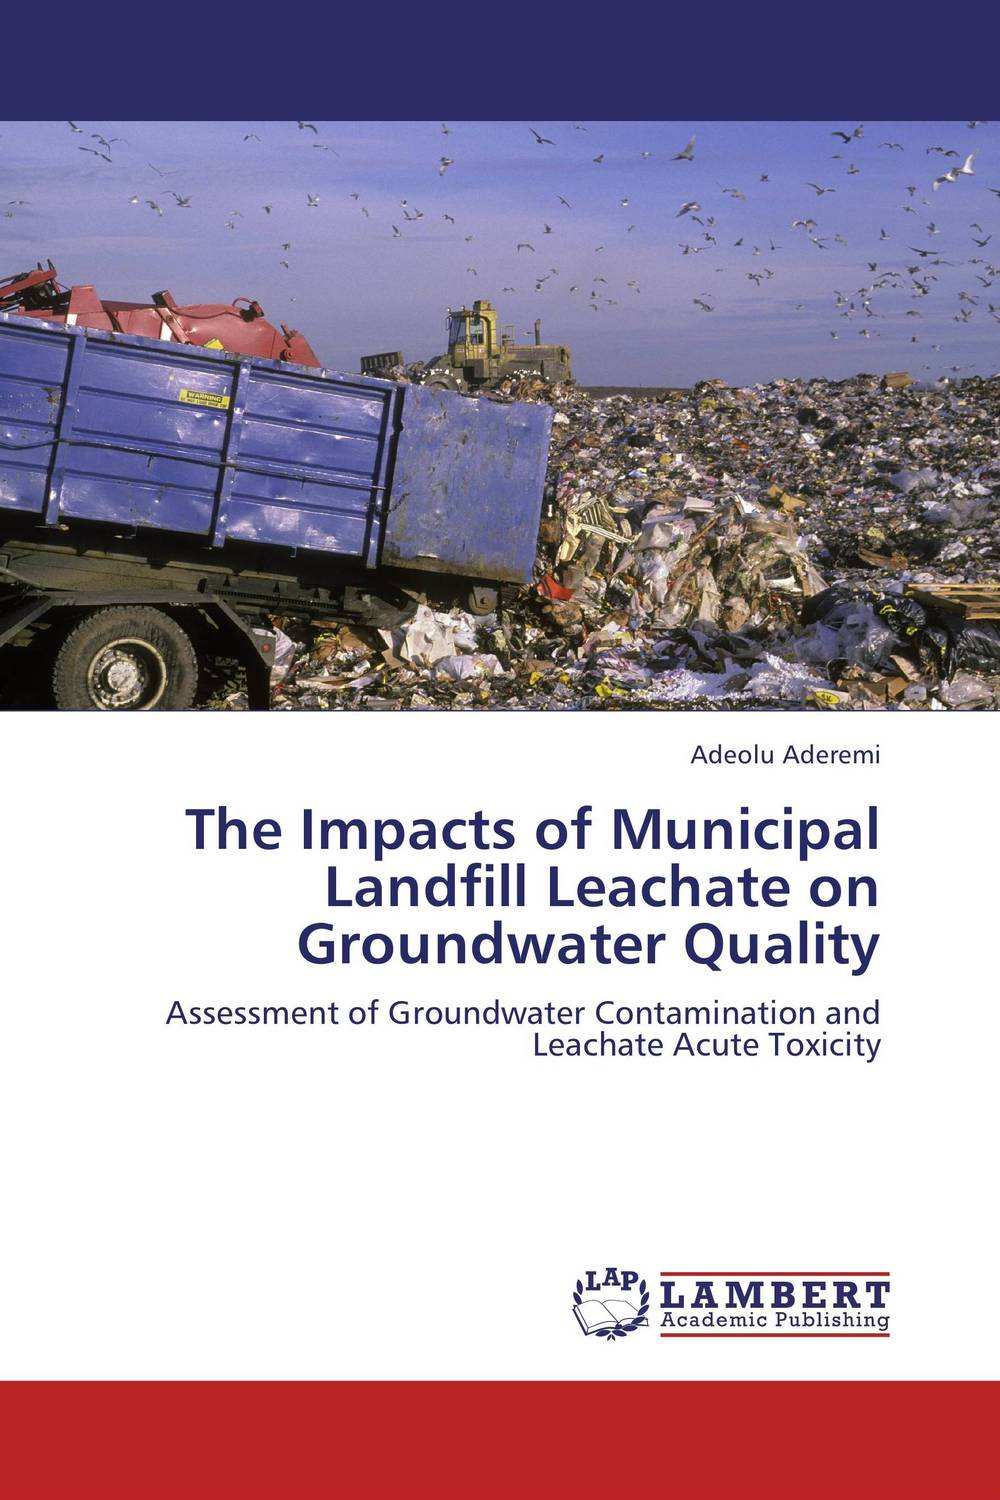 The Impacts of Municipal Landfill Leachate on Groundwater Quality